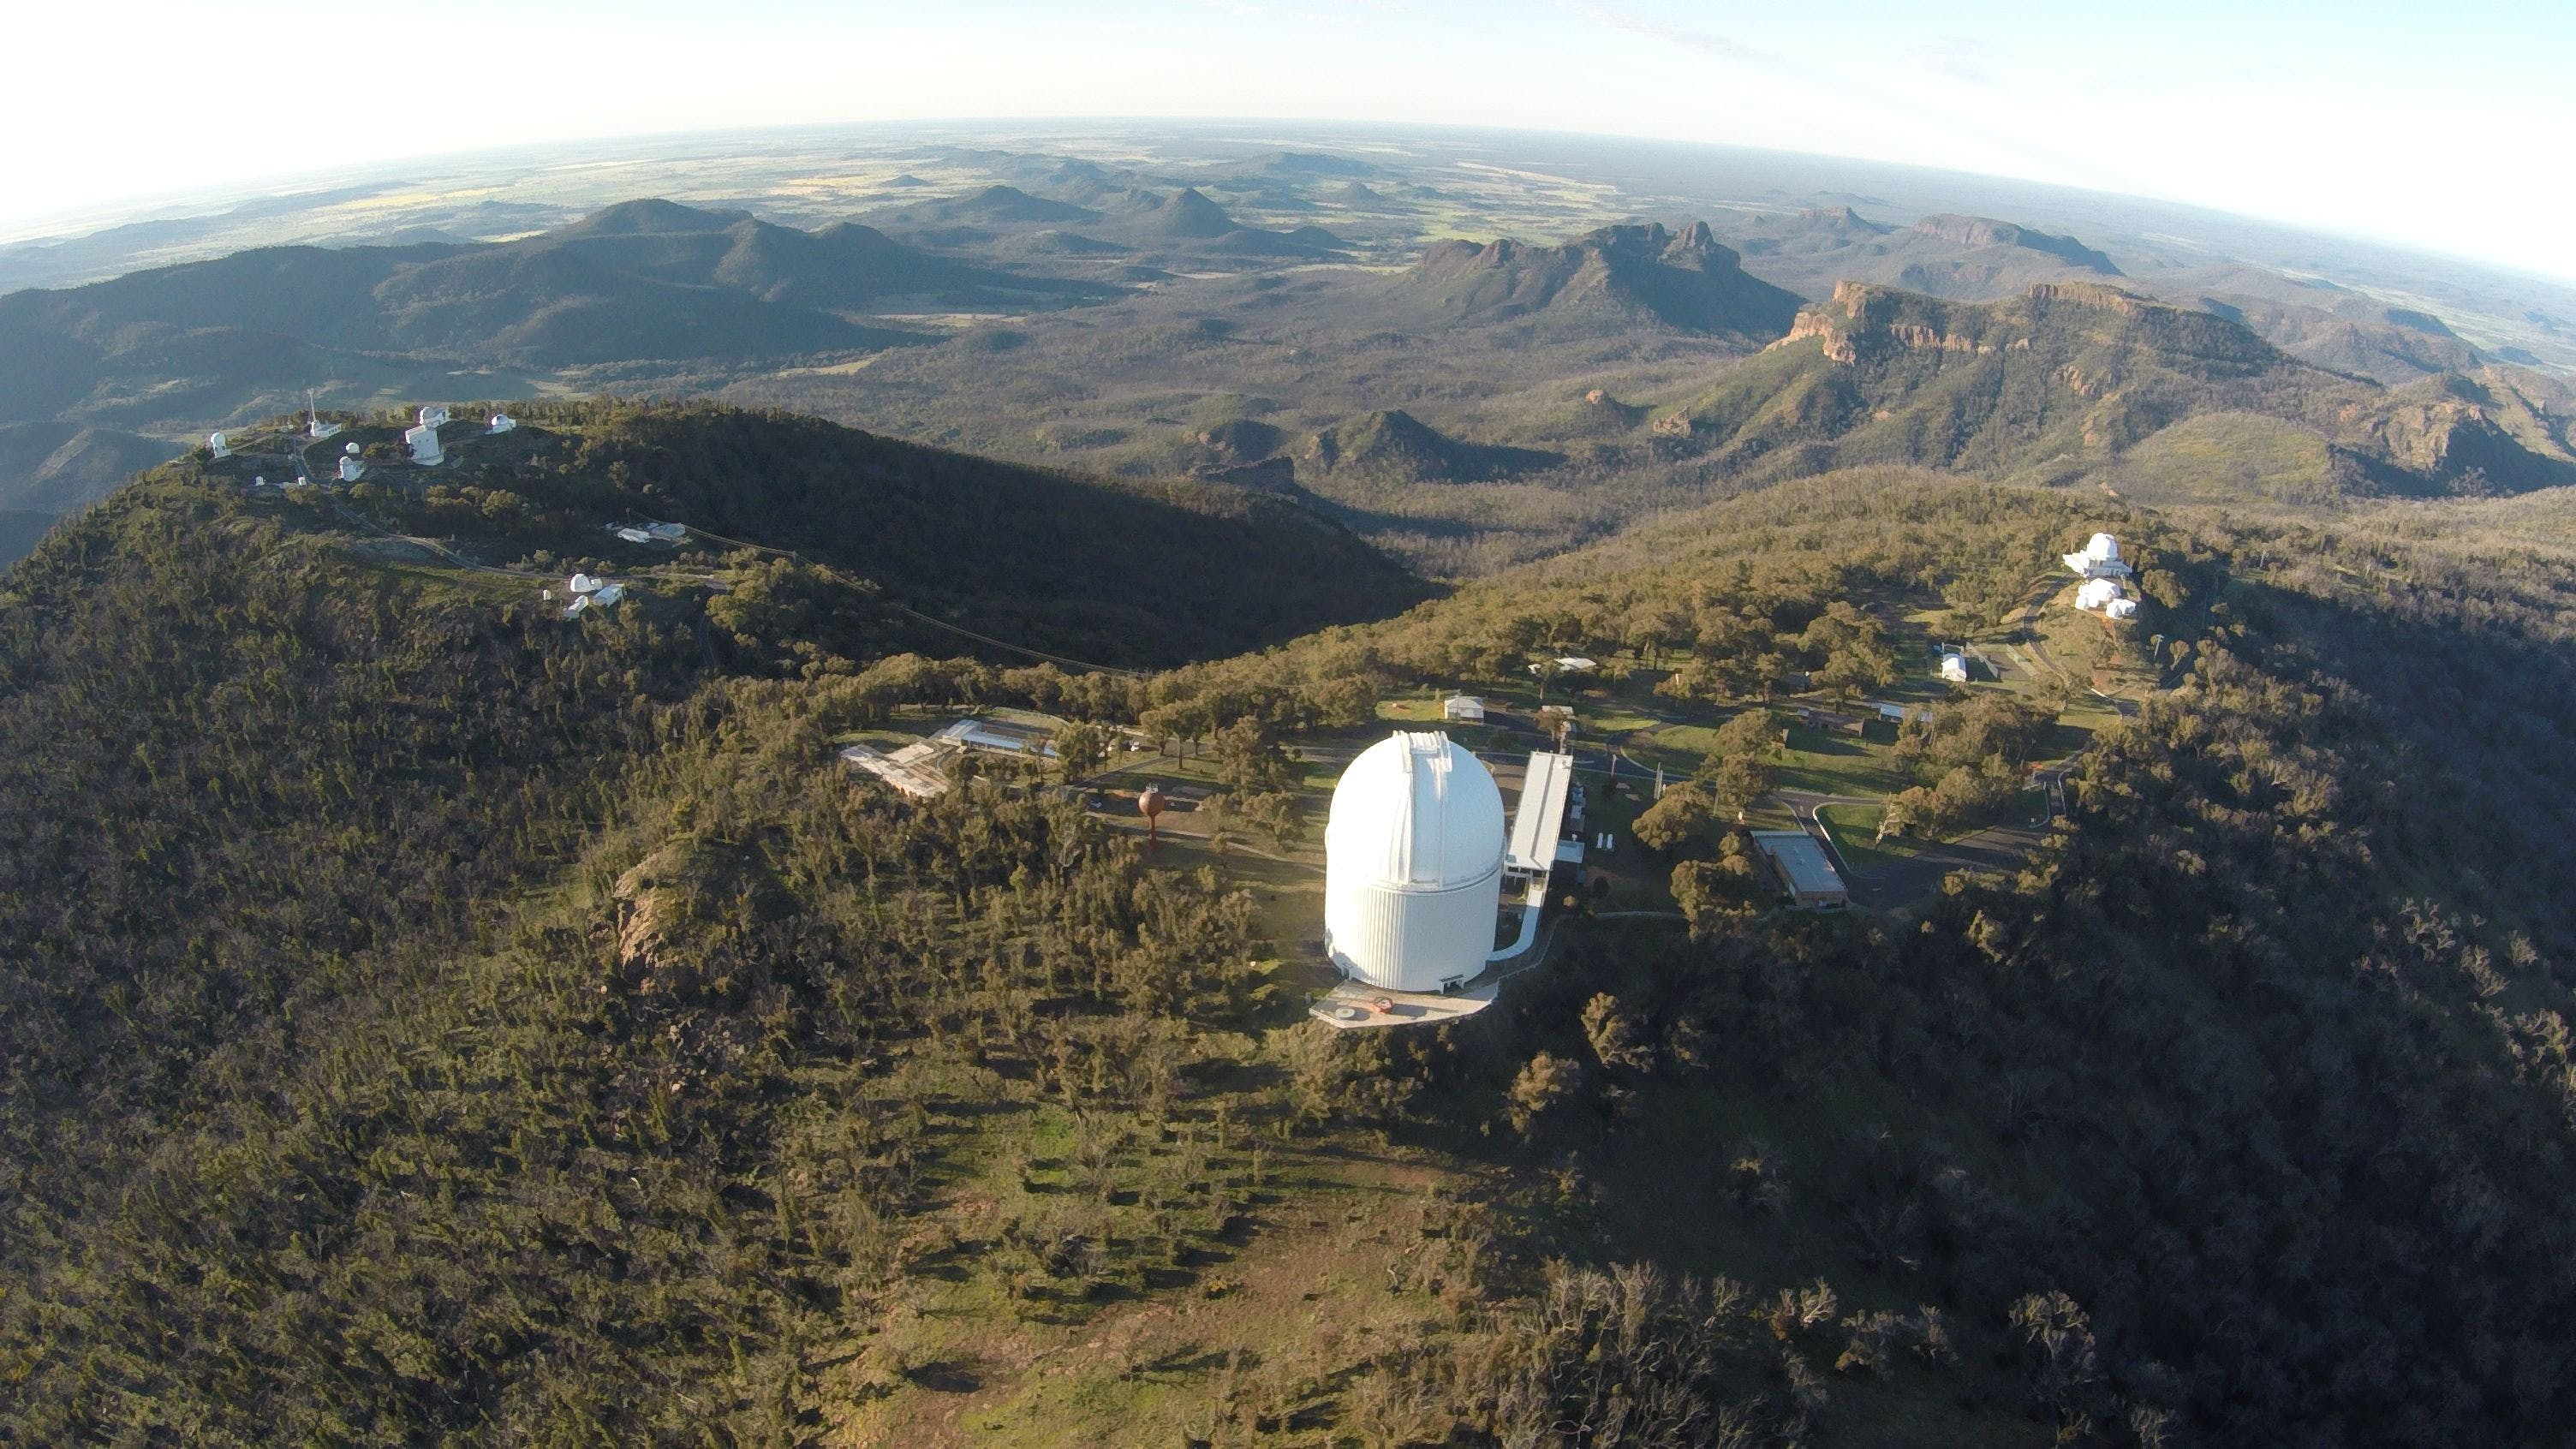 Siding Spring Observatory - Foster Accommodation